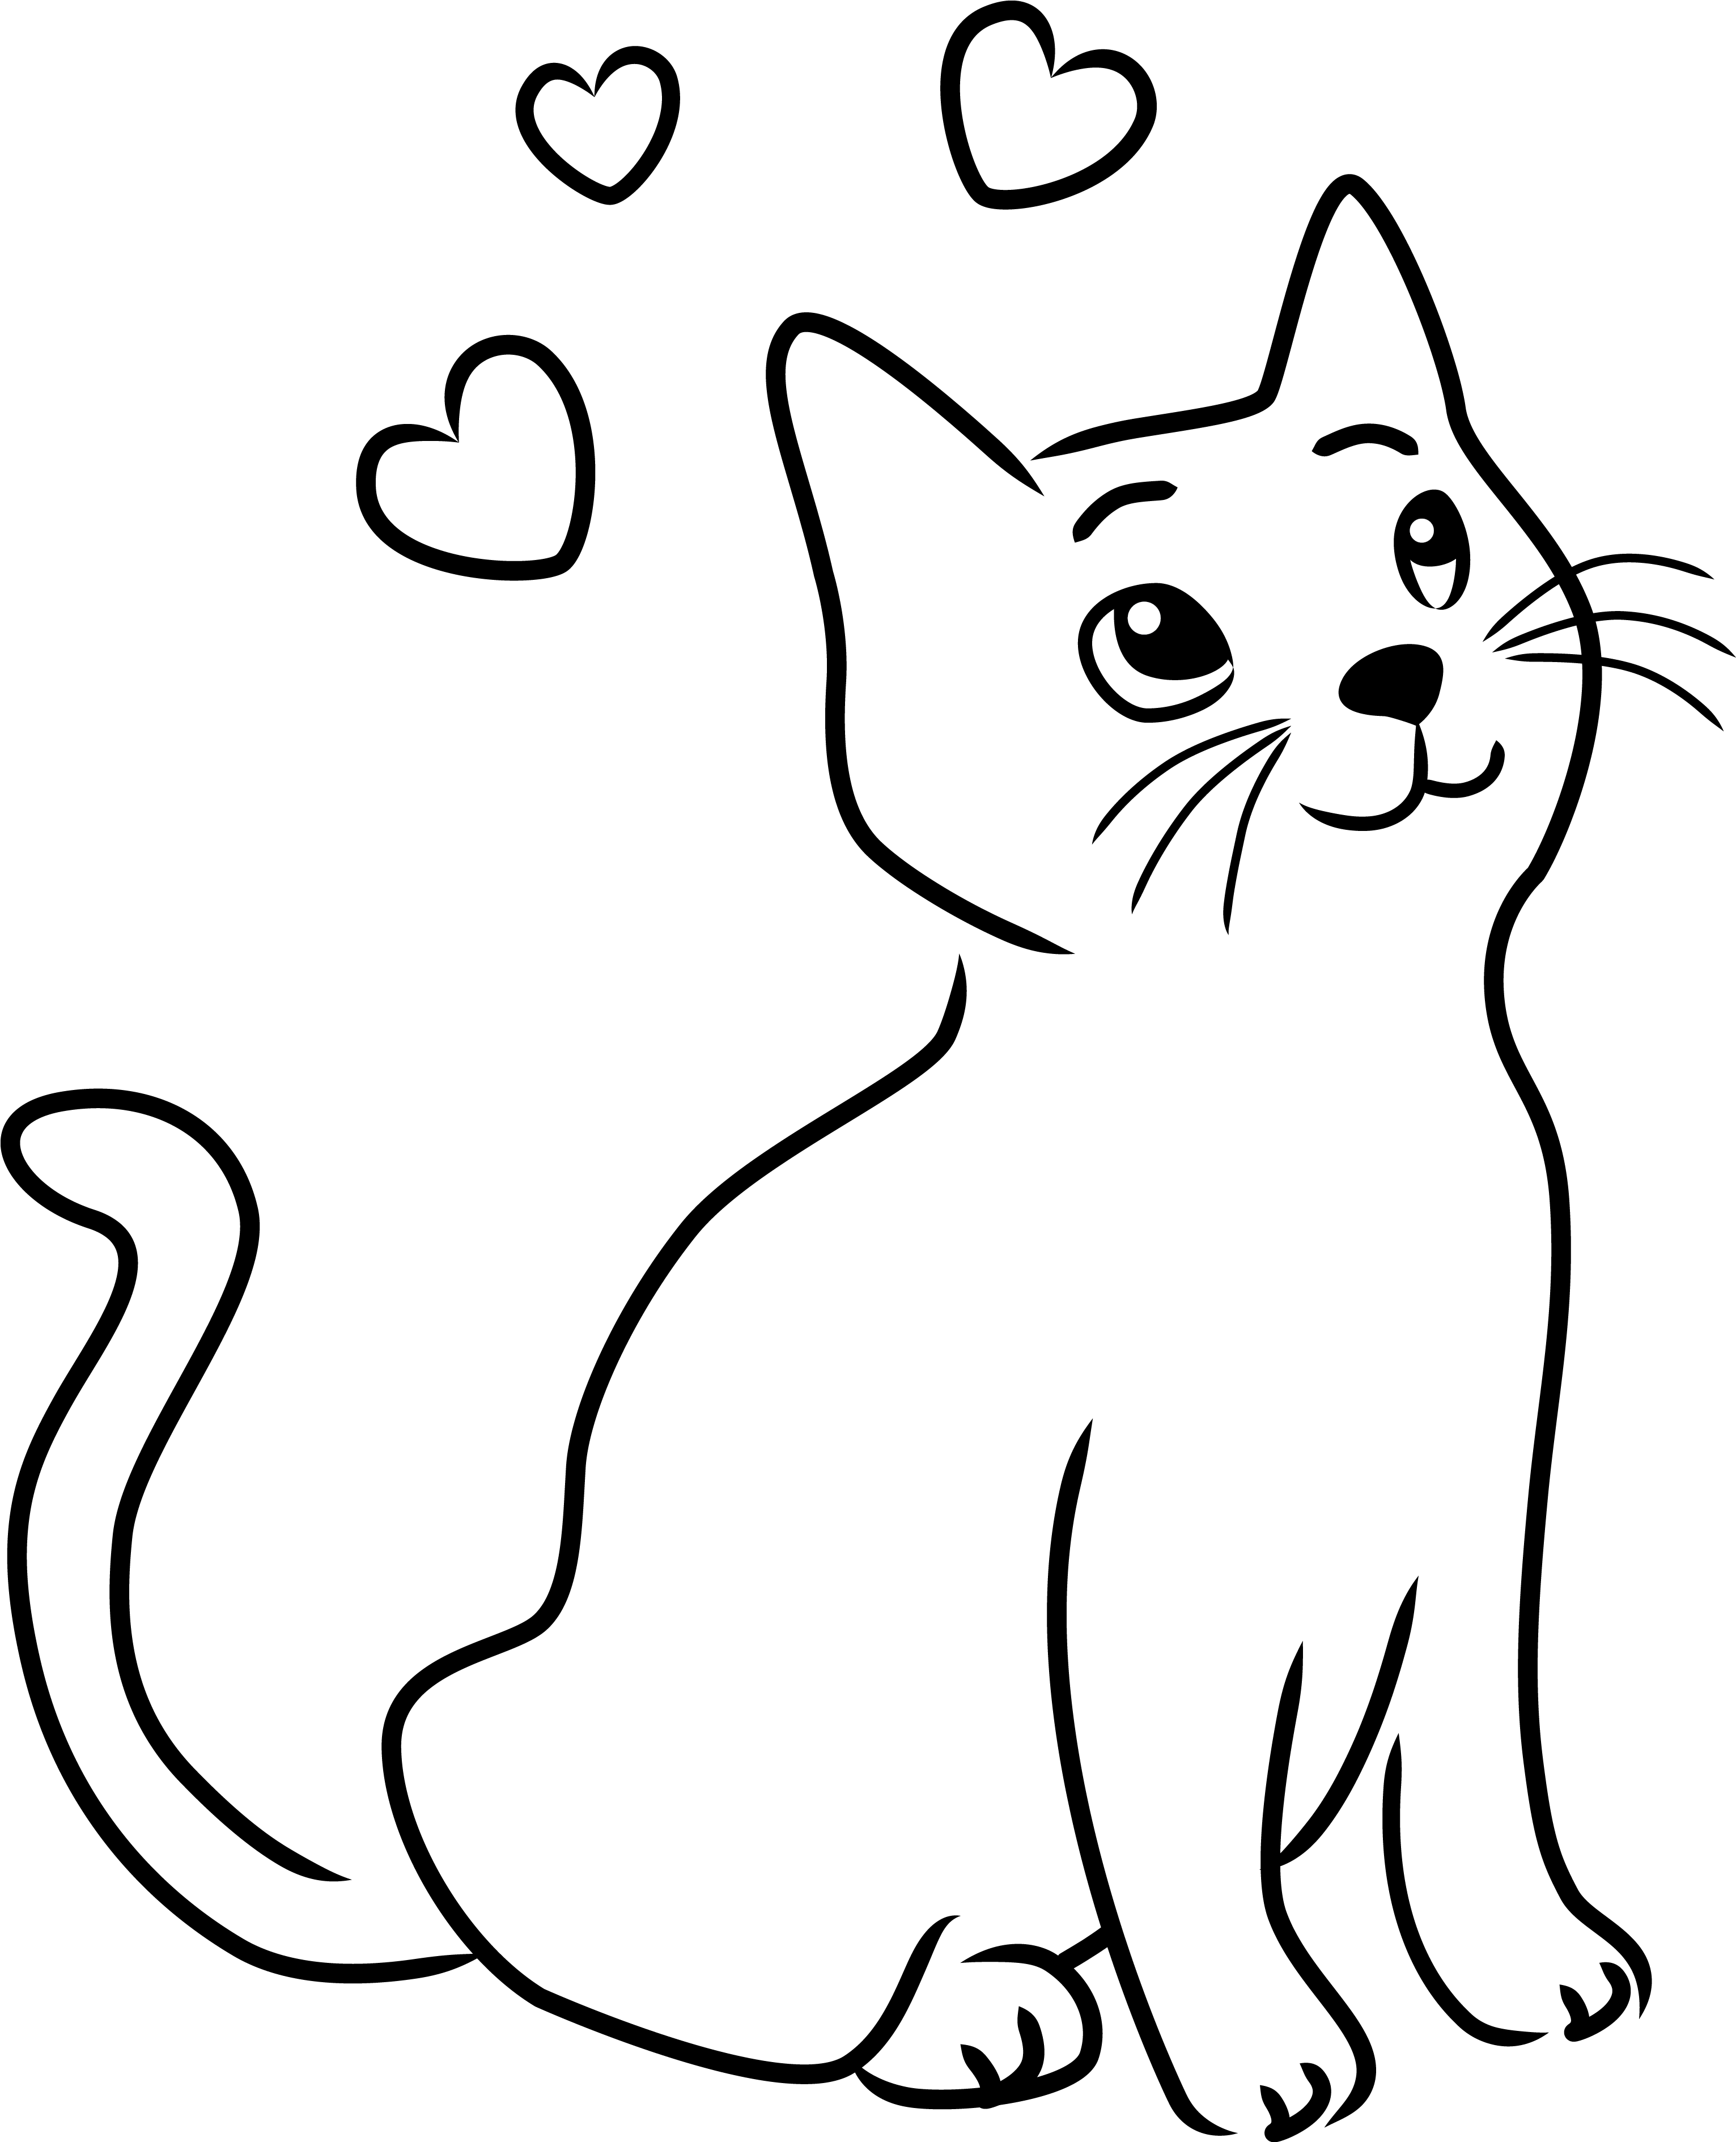 Cats Clipart Outline Cats Outline Transparent Free For